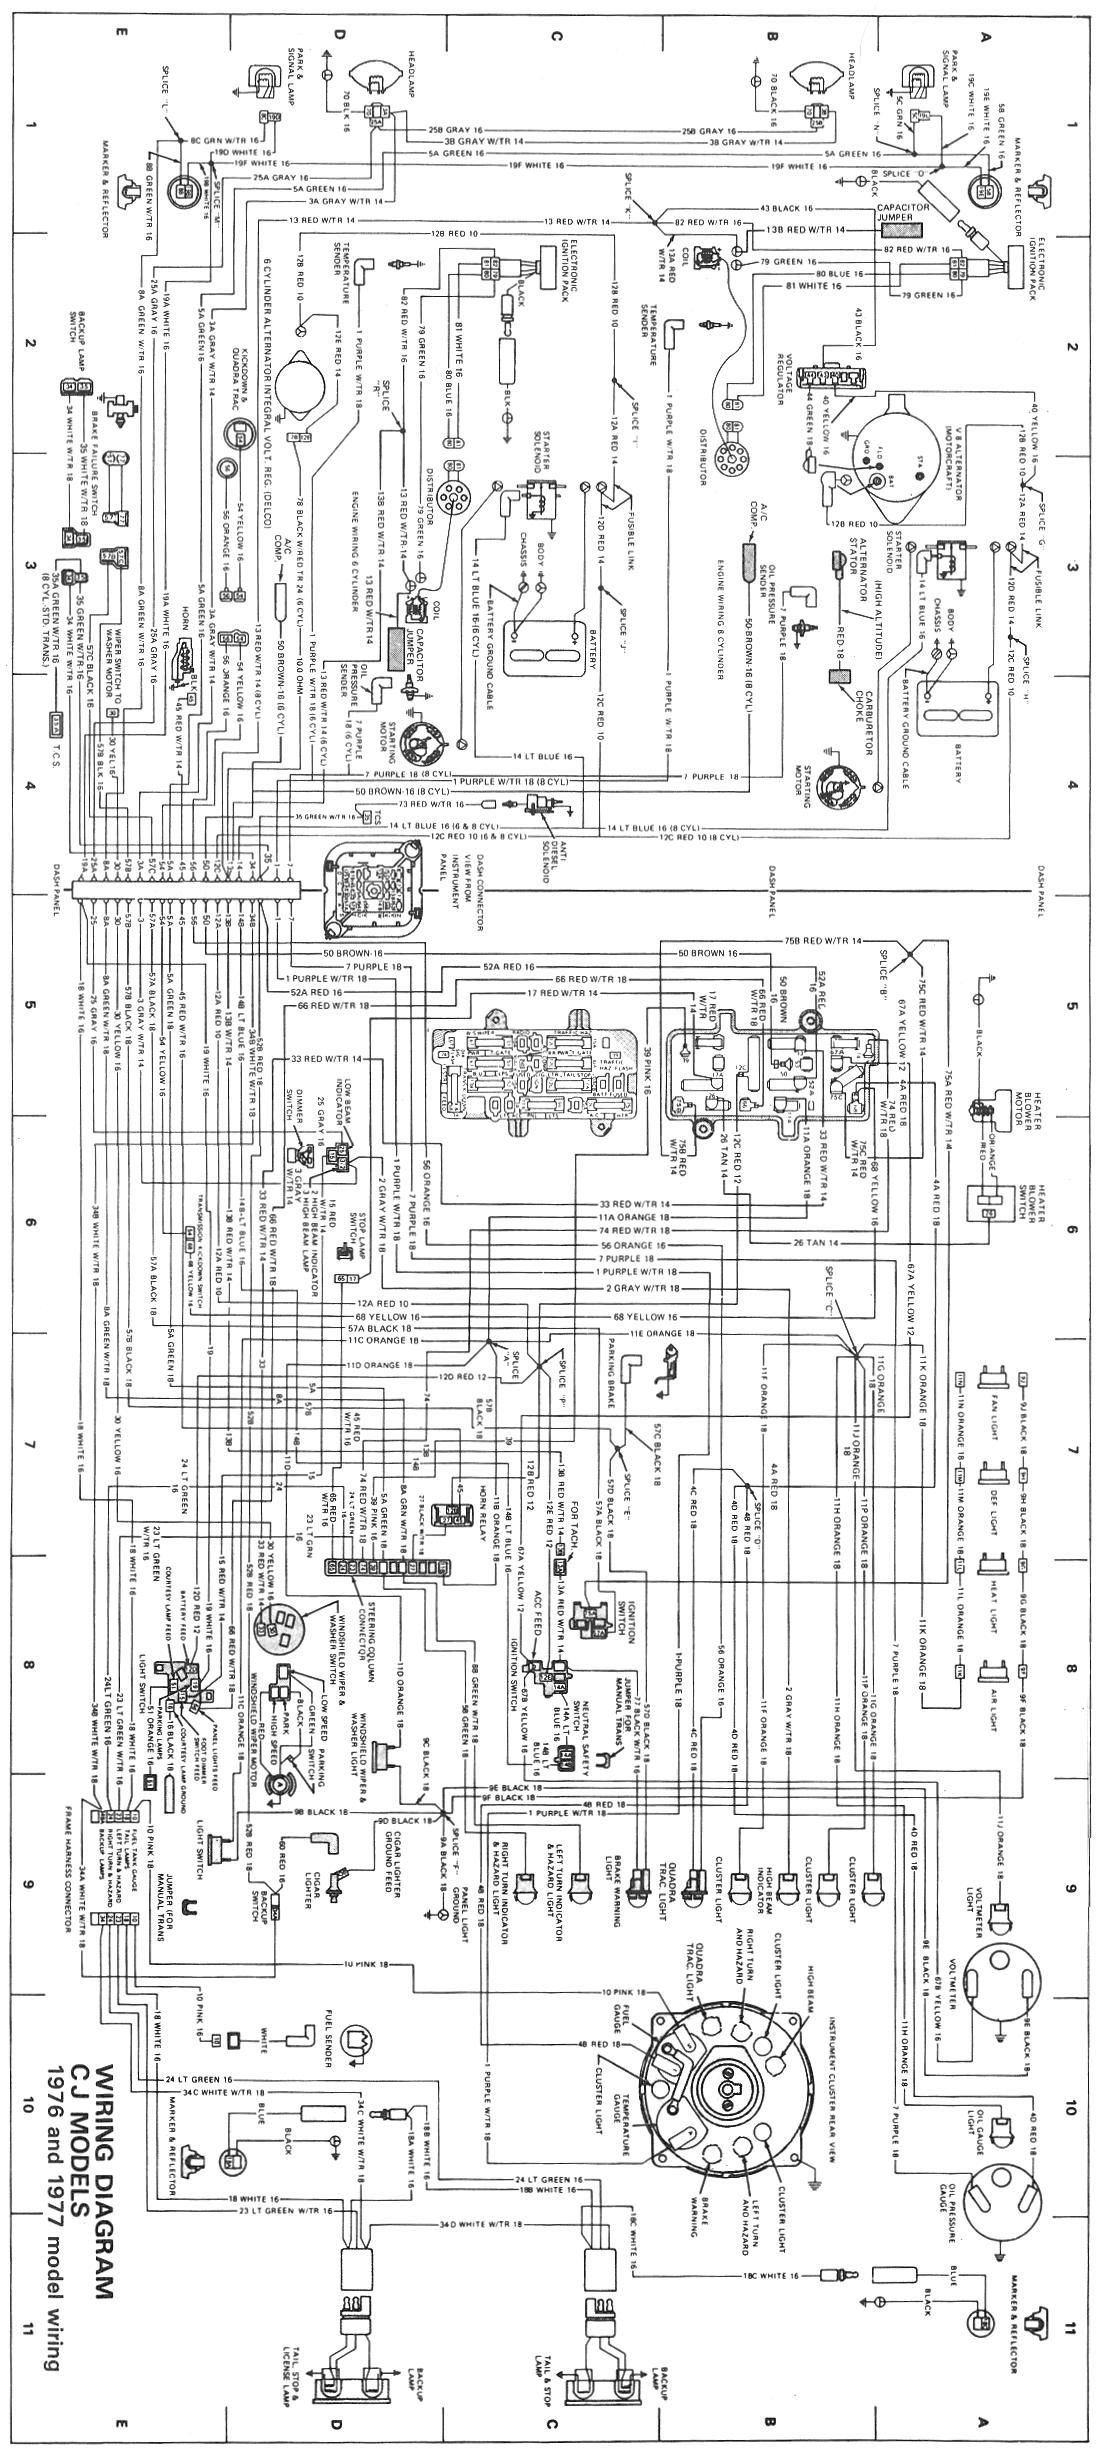 8d25ded6e3673519e155875e09844e5e cj wiring diagram 1976 1977 jpg 1,100�2,459 pixels 1976 jeep cj5 cj5 jeep wiring diagram at soozxer.org